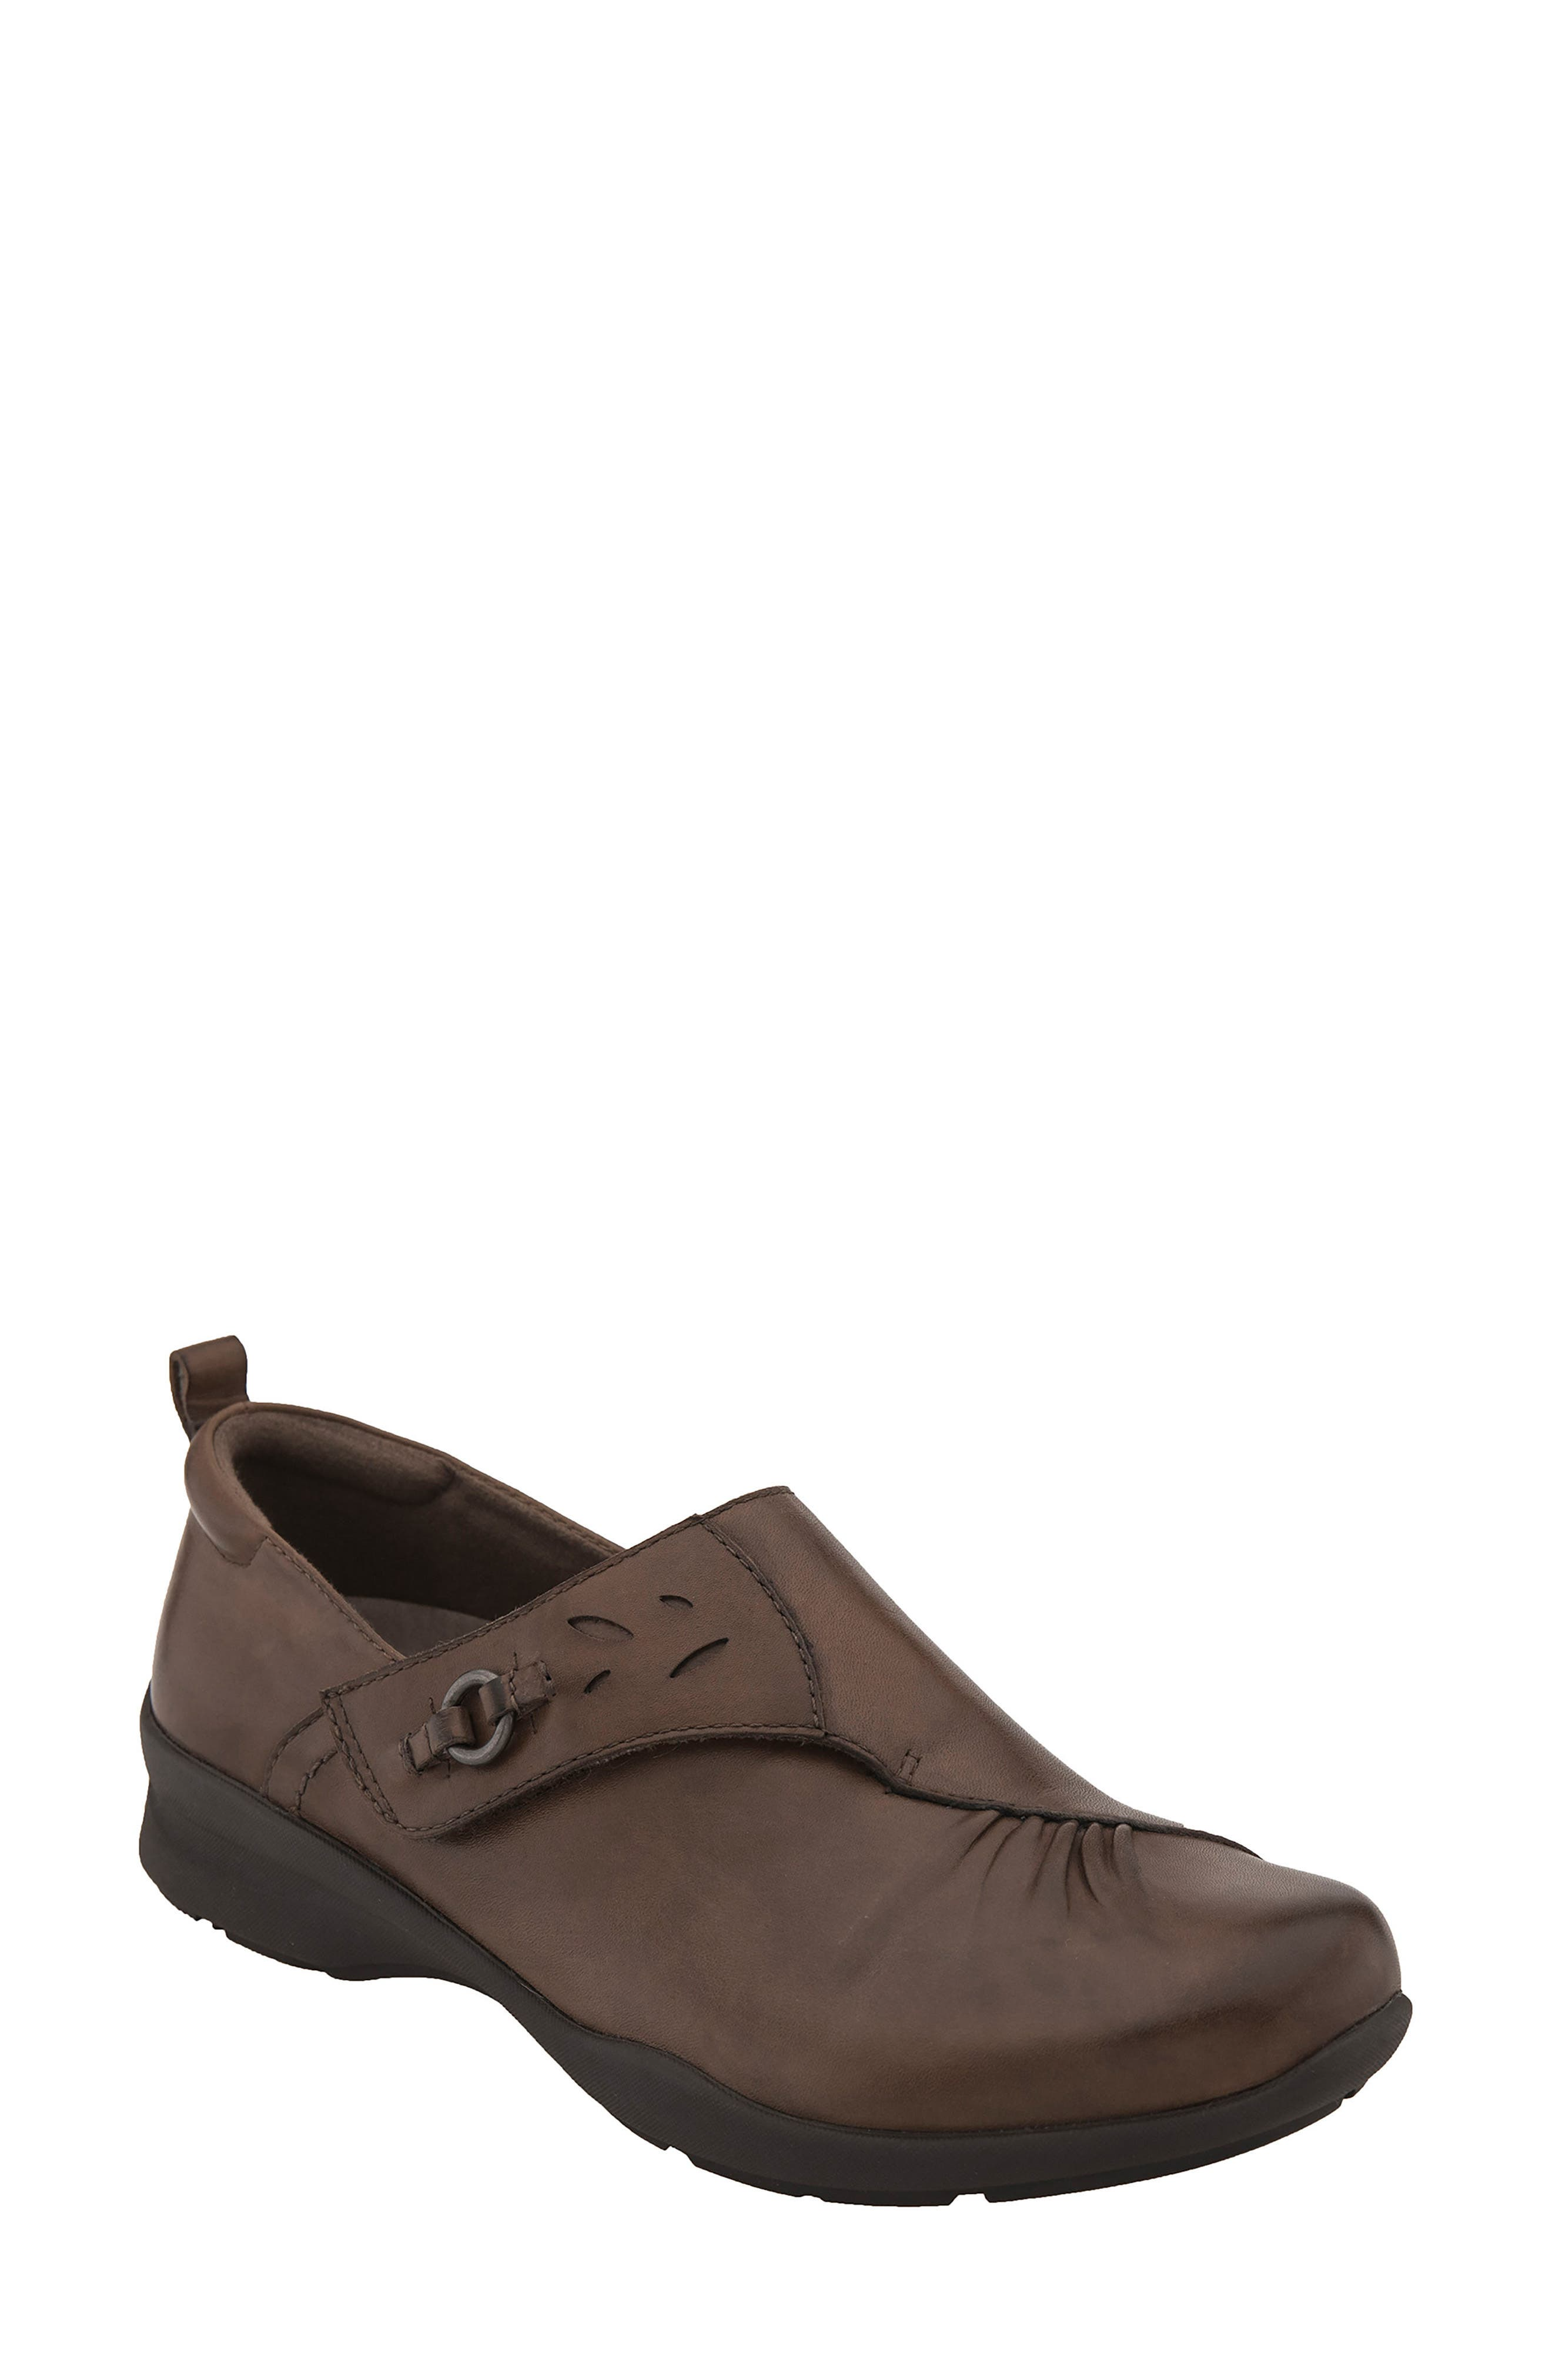 Amity Loafer,                         Main,                         color, Almond Leather